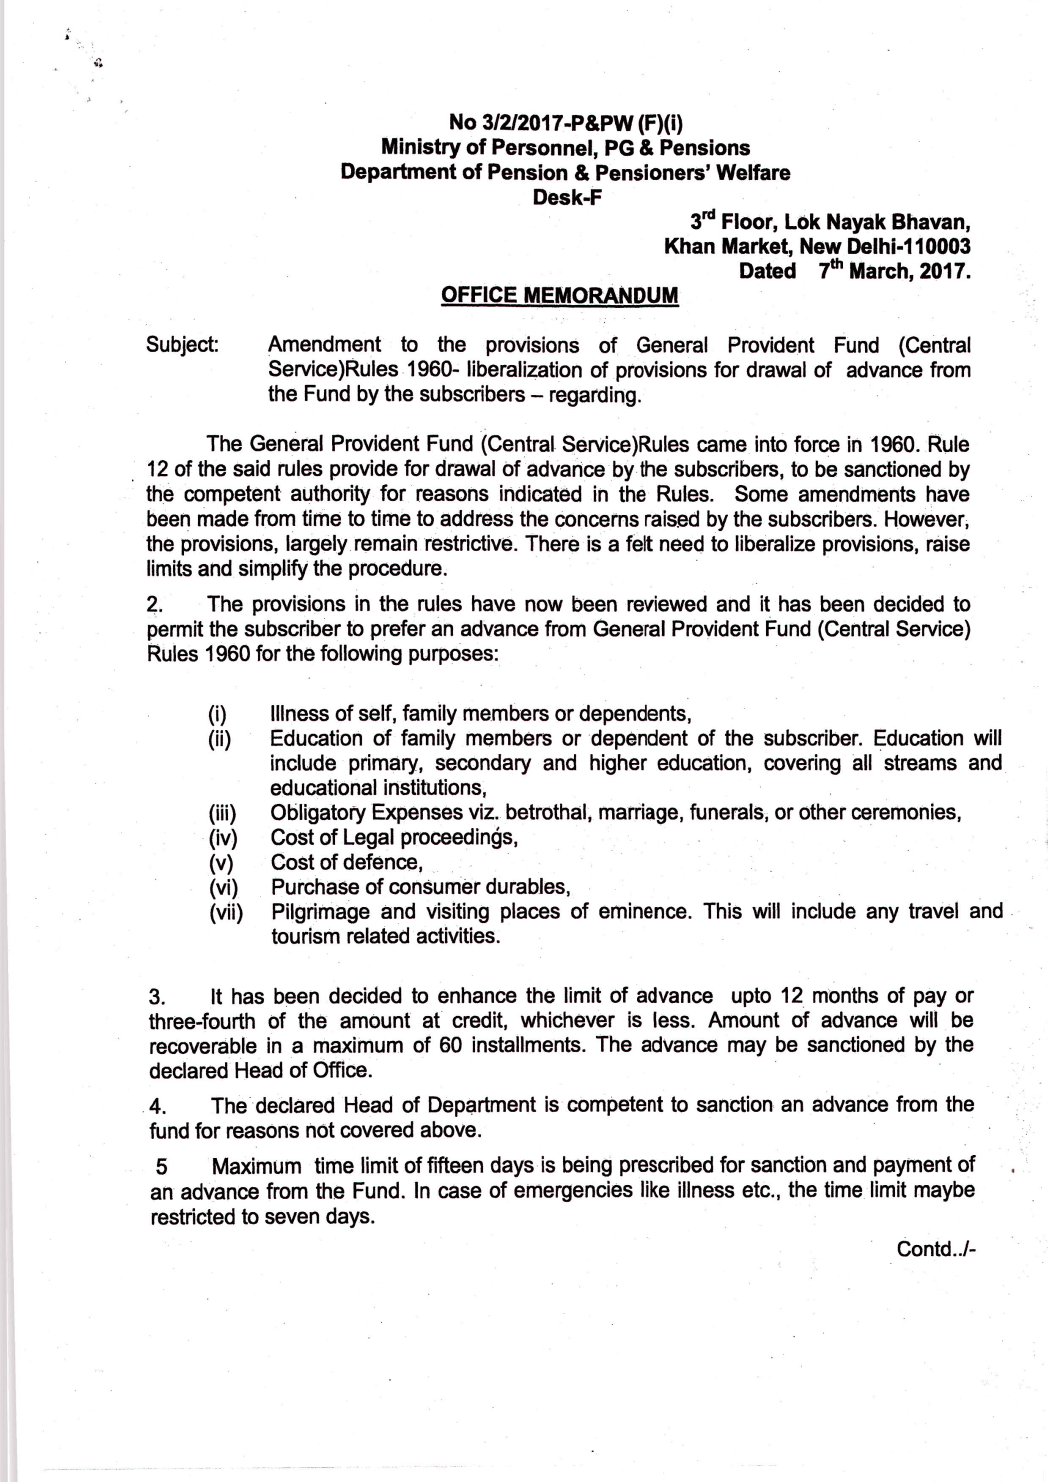 Amendment to the provisions of GPF (CS) Rules 1960